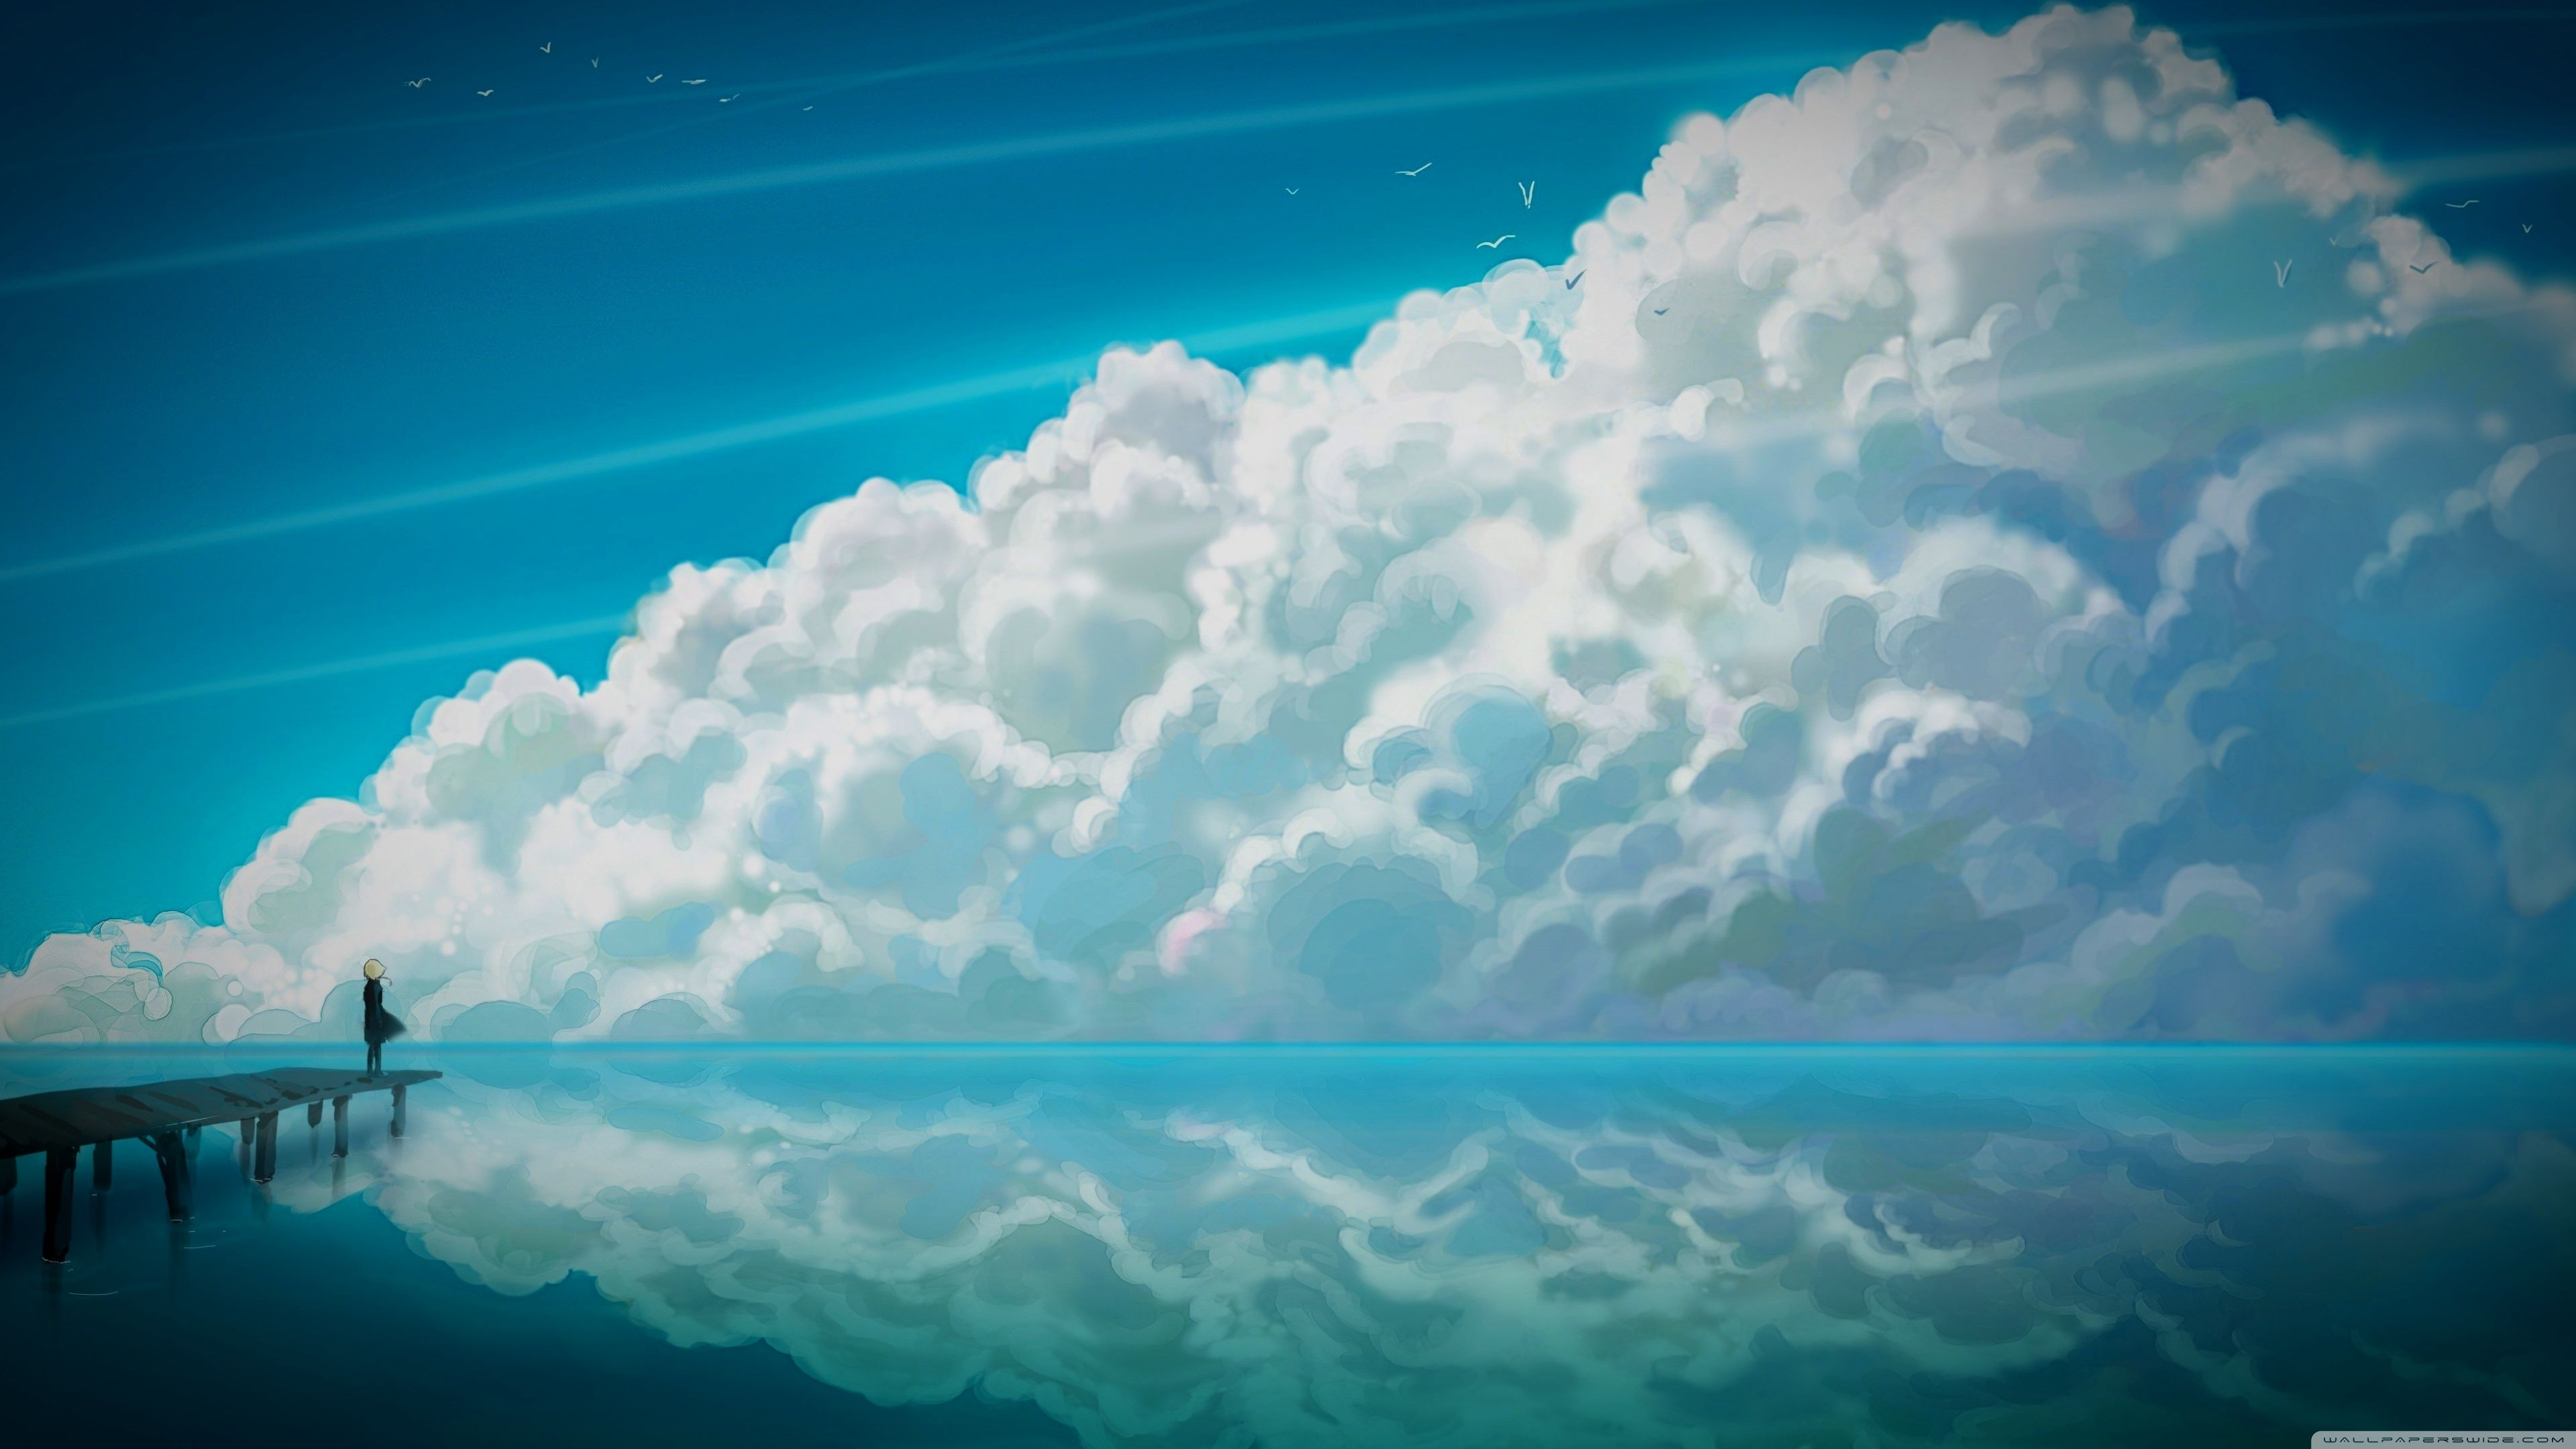 Anime Sky Wallpapers Top Free Anime Sky Backgrounds